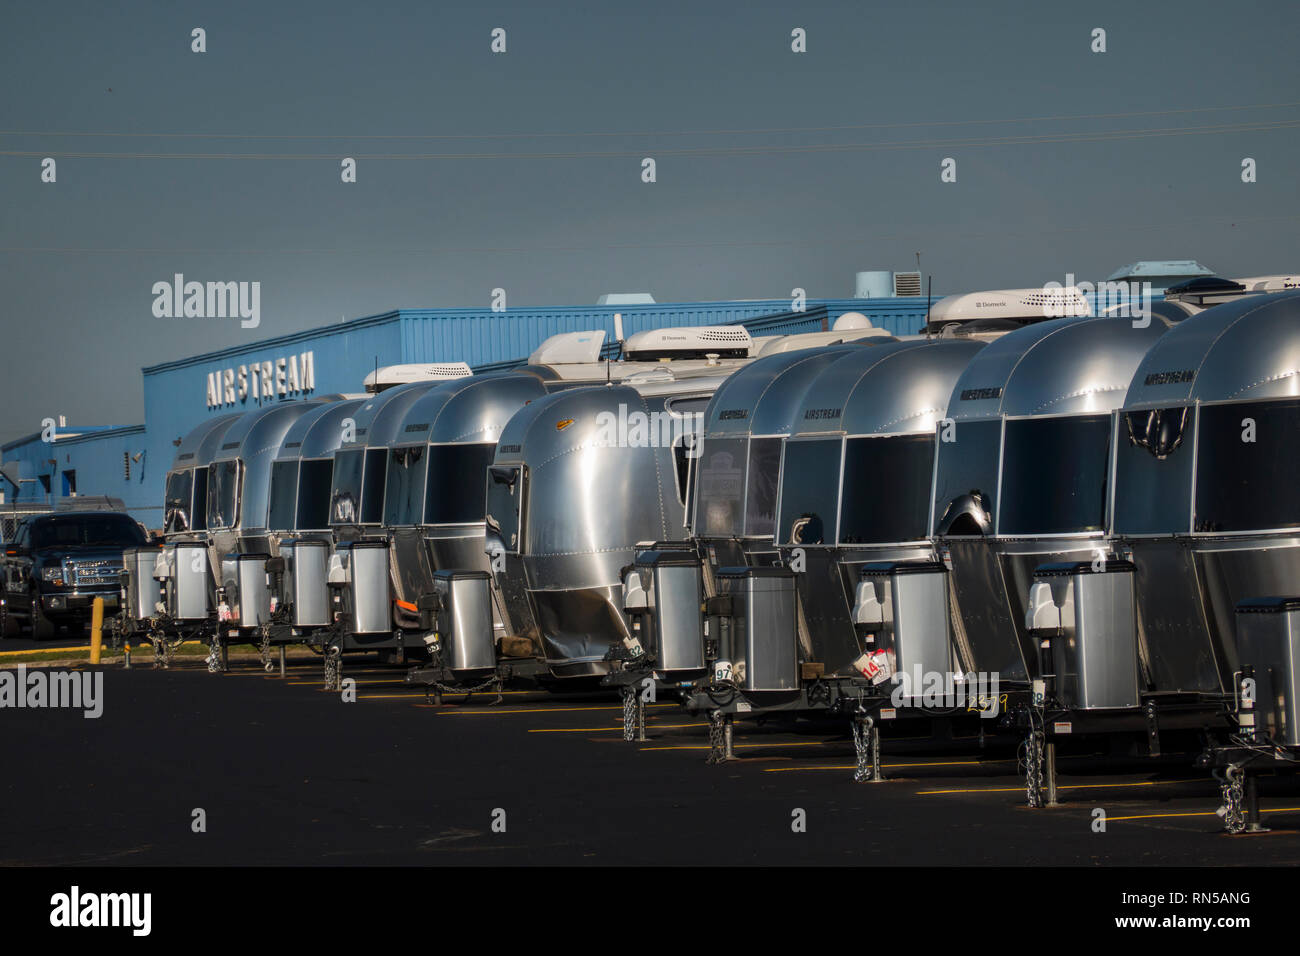 Airstream Trailers Stock Photos & Airstream Trailers Stock Images